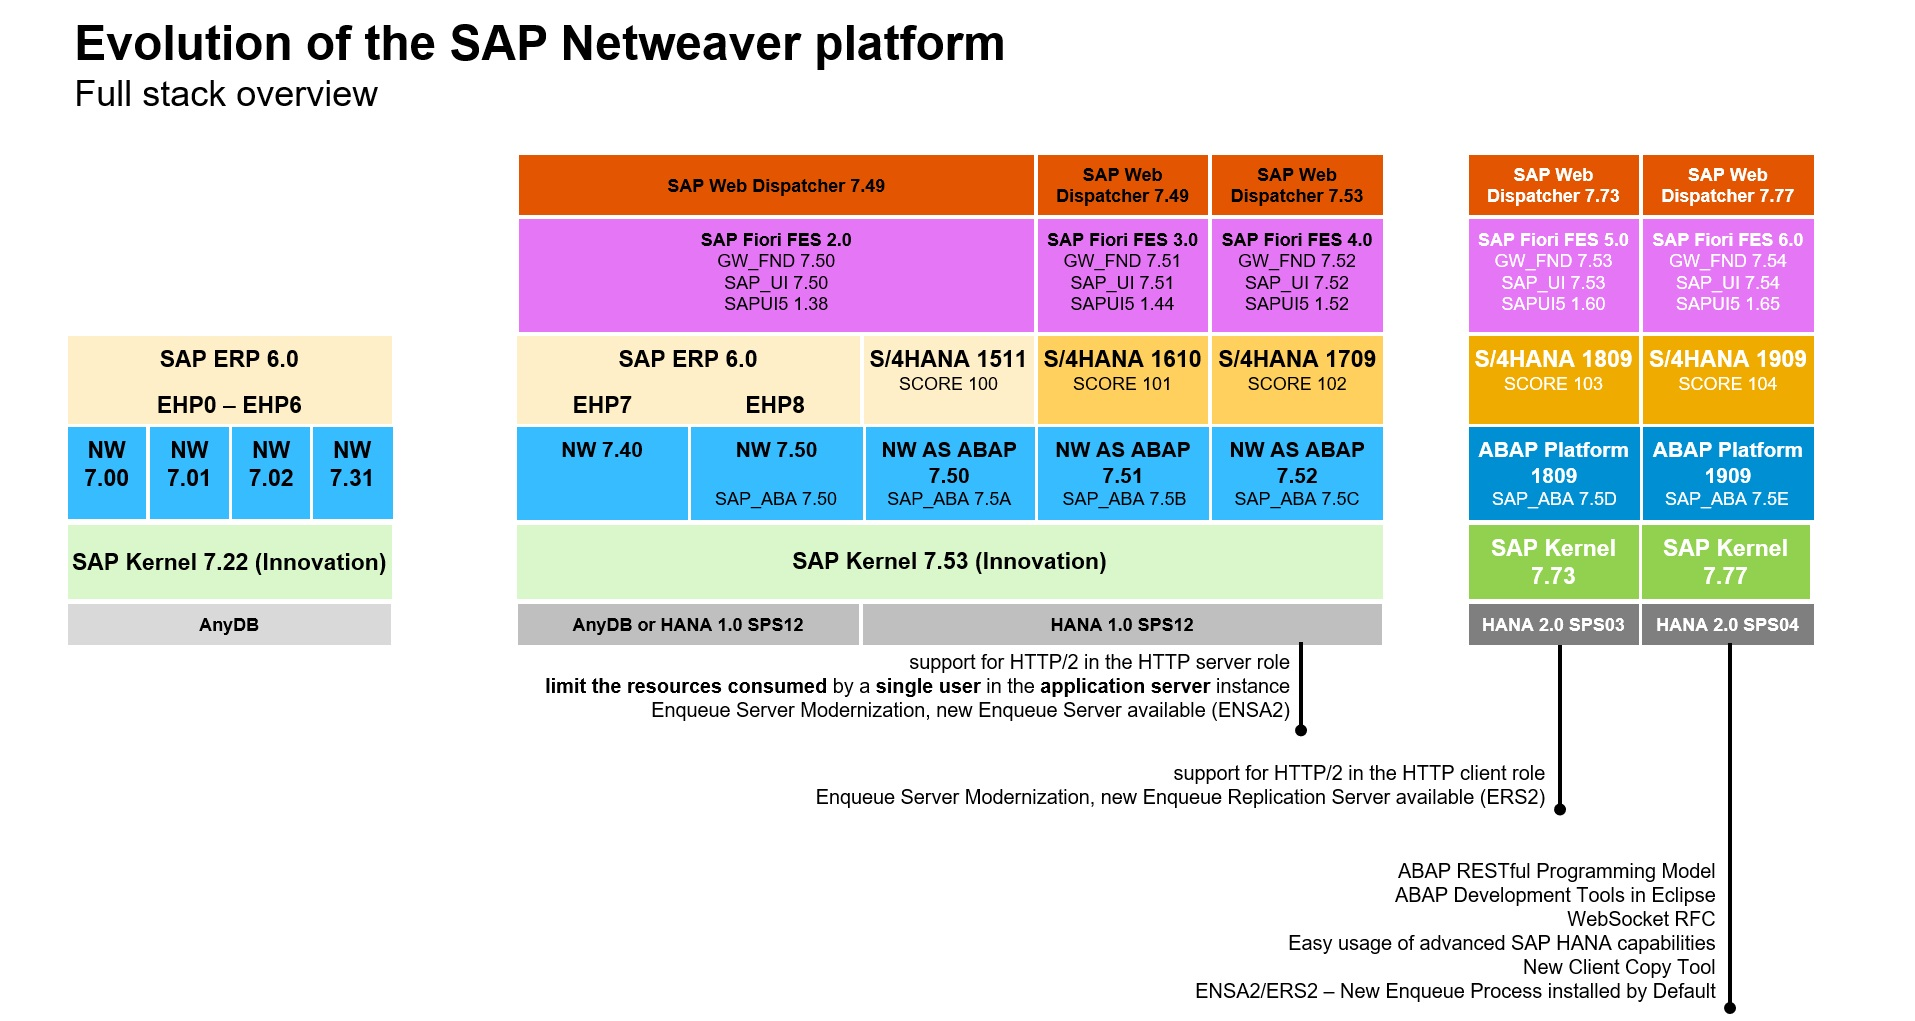 Evolution%20of%20SAP%20Netweaver%20towards%20ABAP%20Platform%20-%20Full%20stack%20view